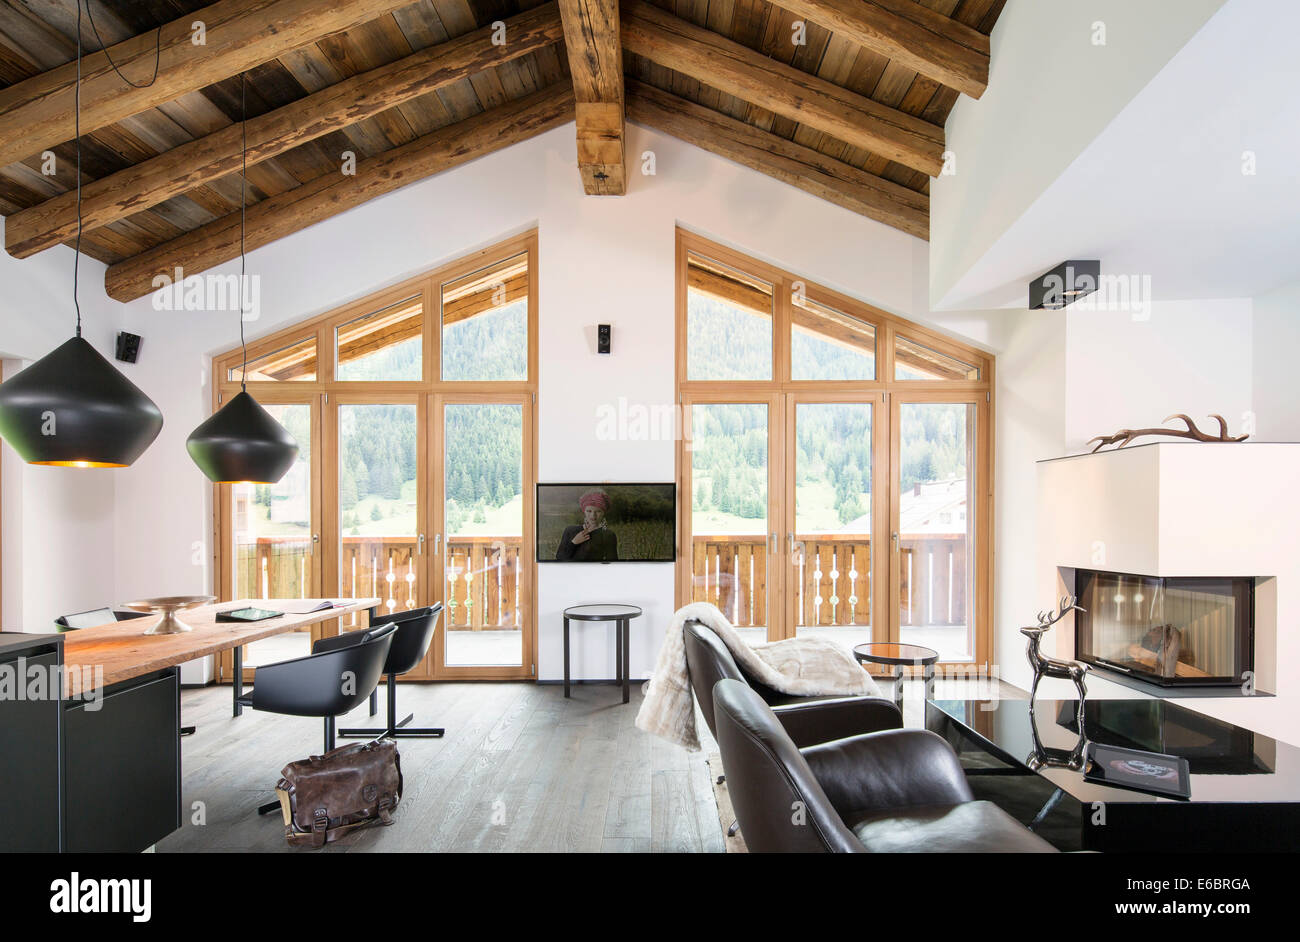 Interior view of a chalet innsbruck north tyrol austria for Interior design osterreich